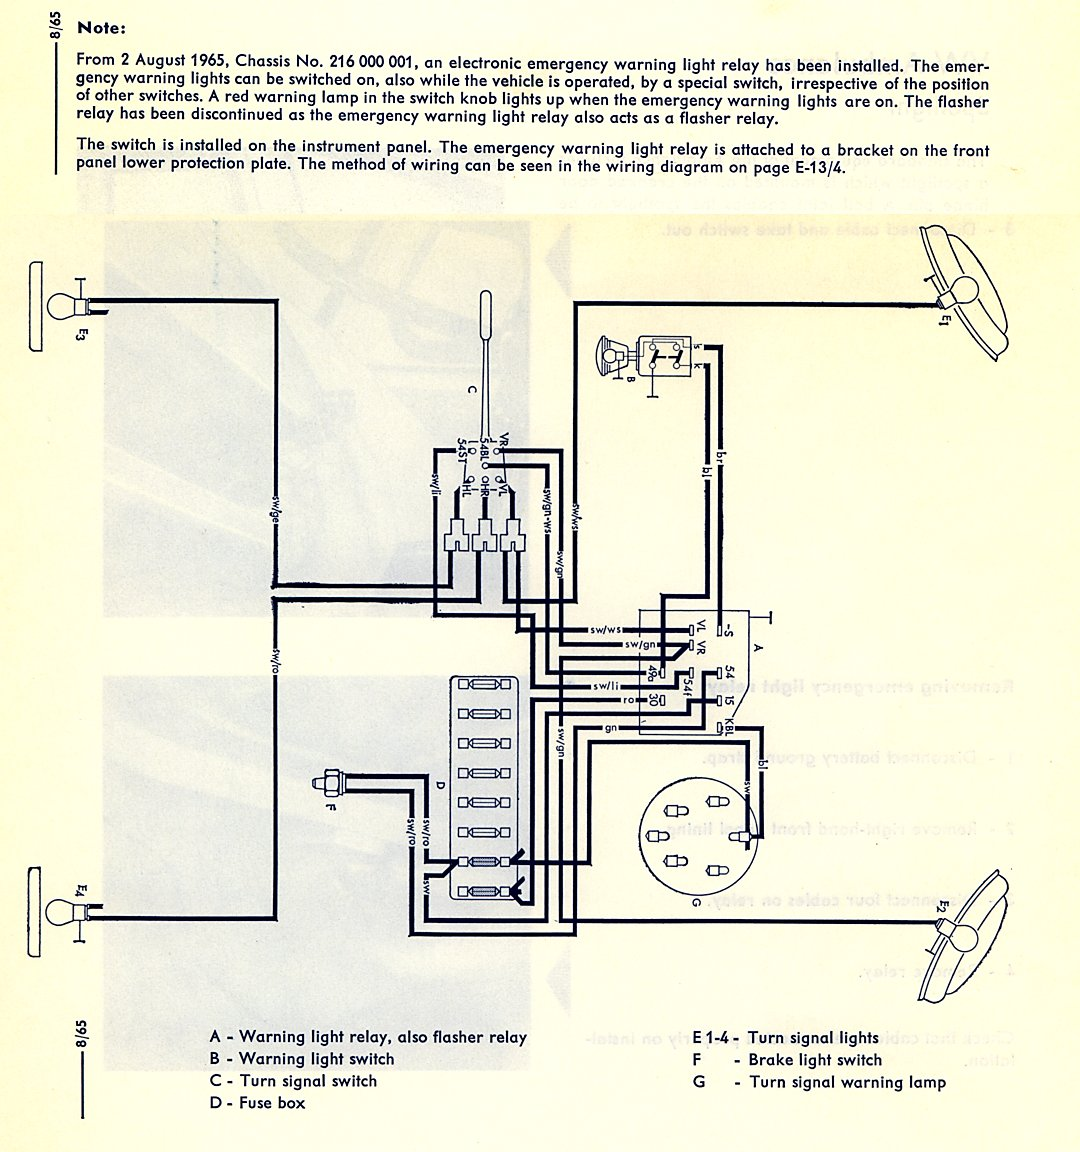 64 Mustang Turn Signal Wiring Diagram Schematic Modern Design Of Stat 800 Library Rh 93 Evitta De Lp And Relay